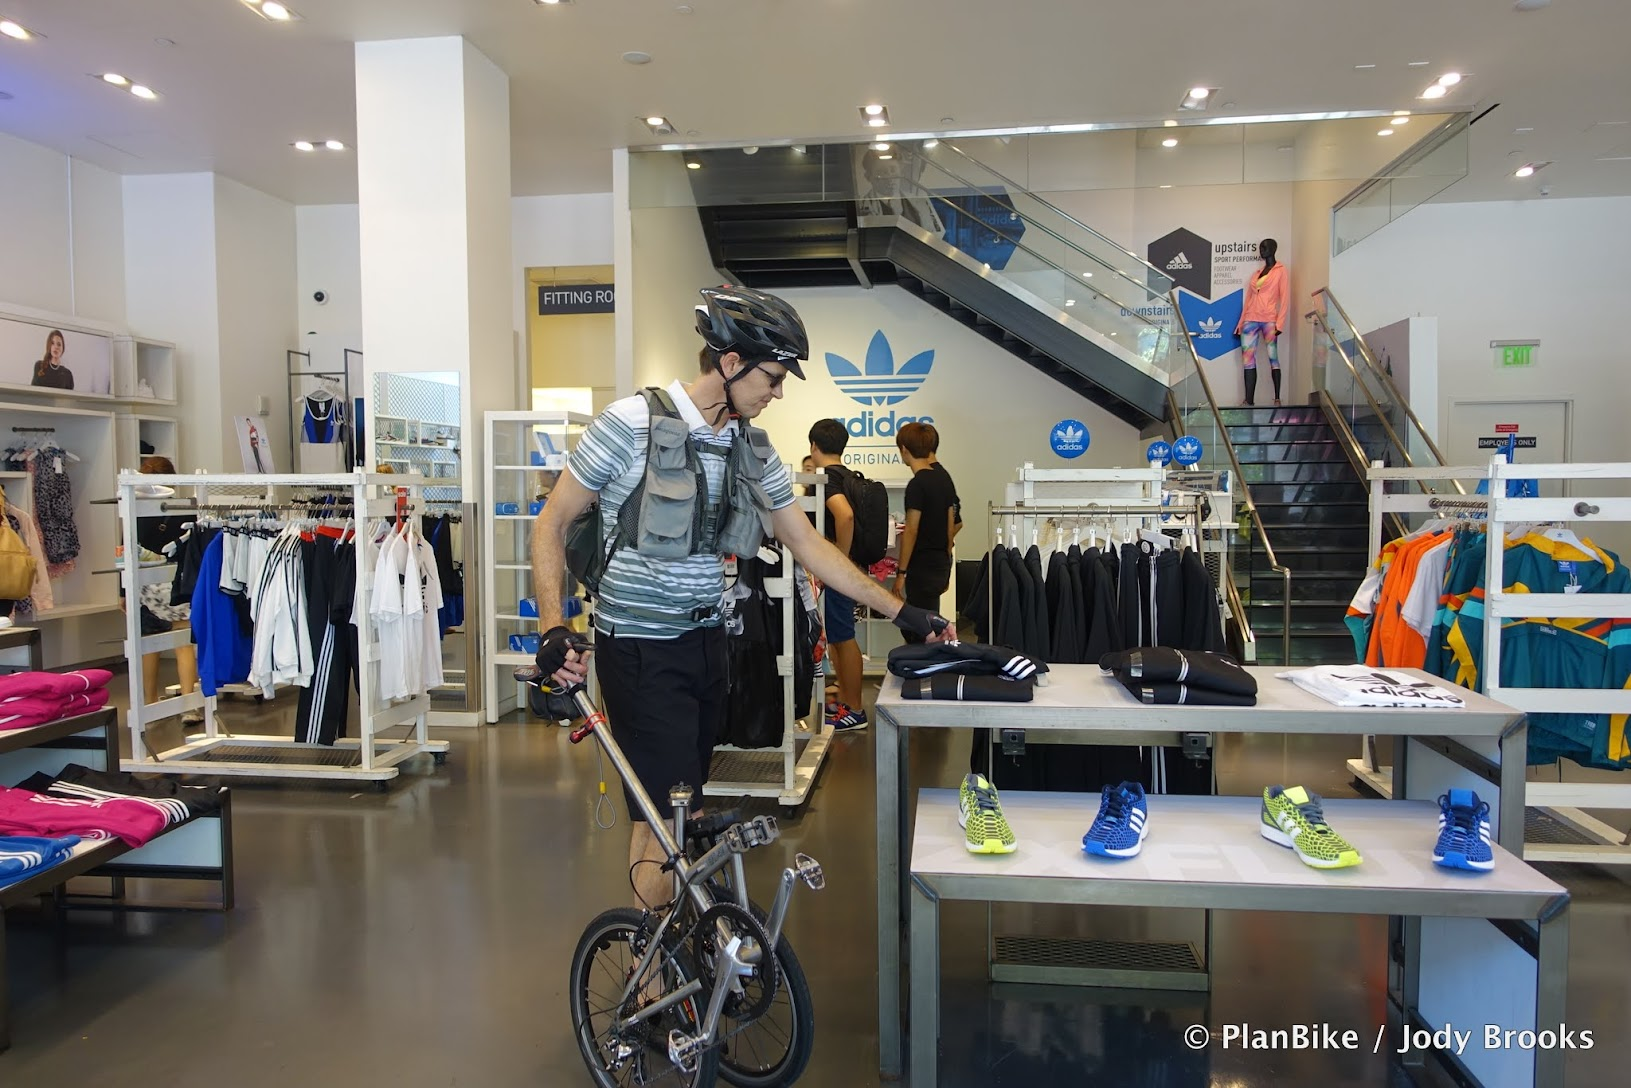 Folding Bikes are welcome in stores.